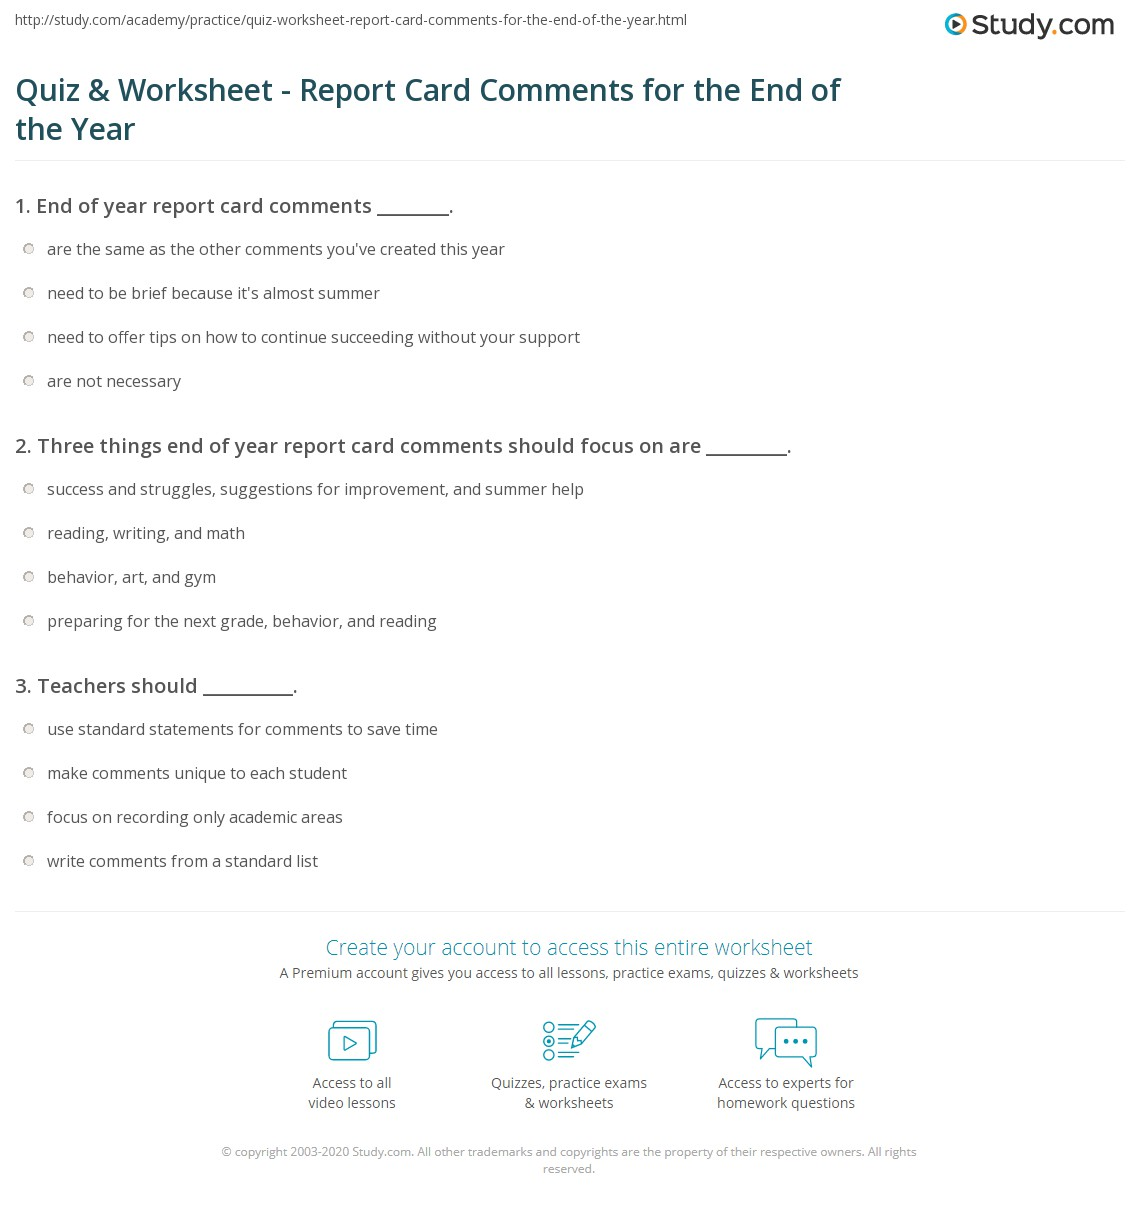 Quiz Worksheet Report Card Comments For The End Of The Year